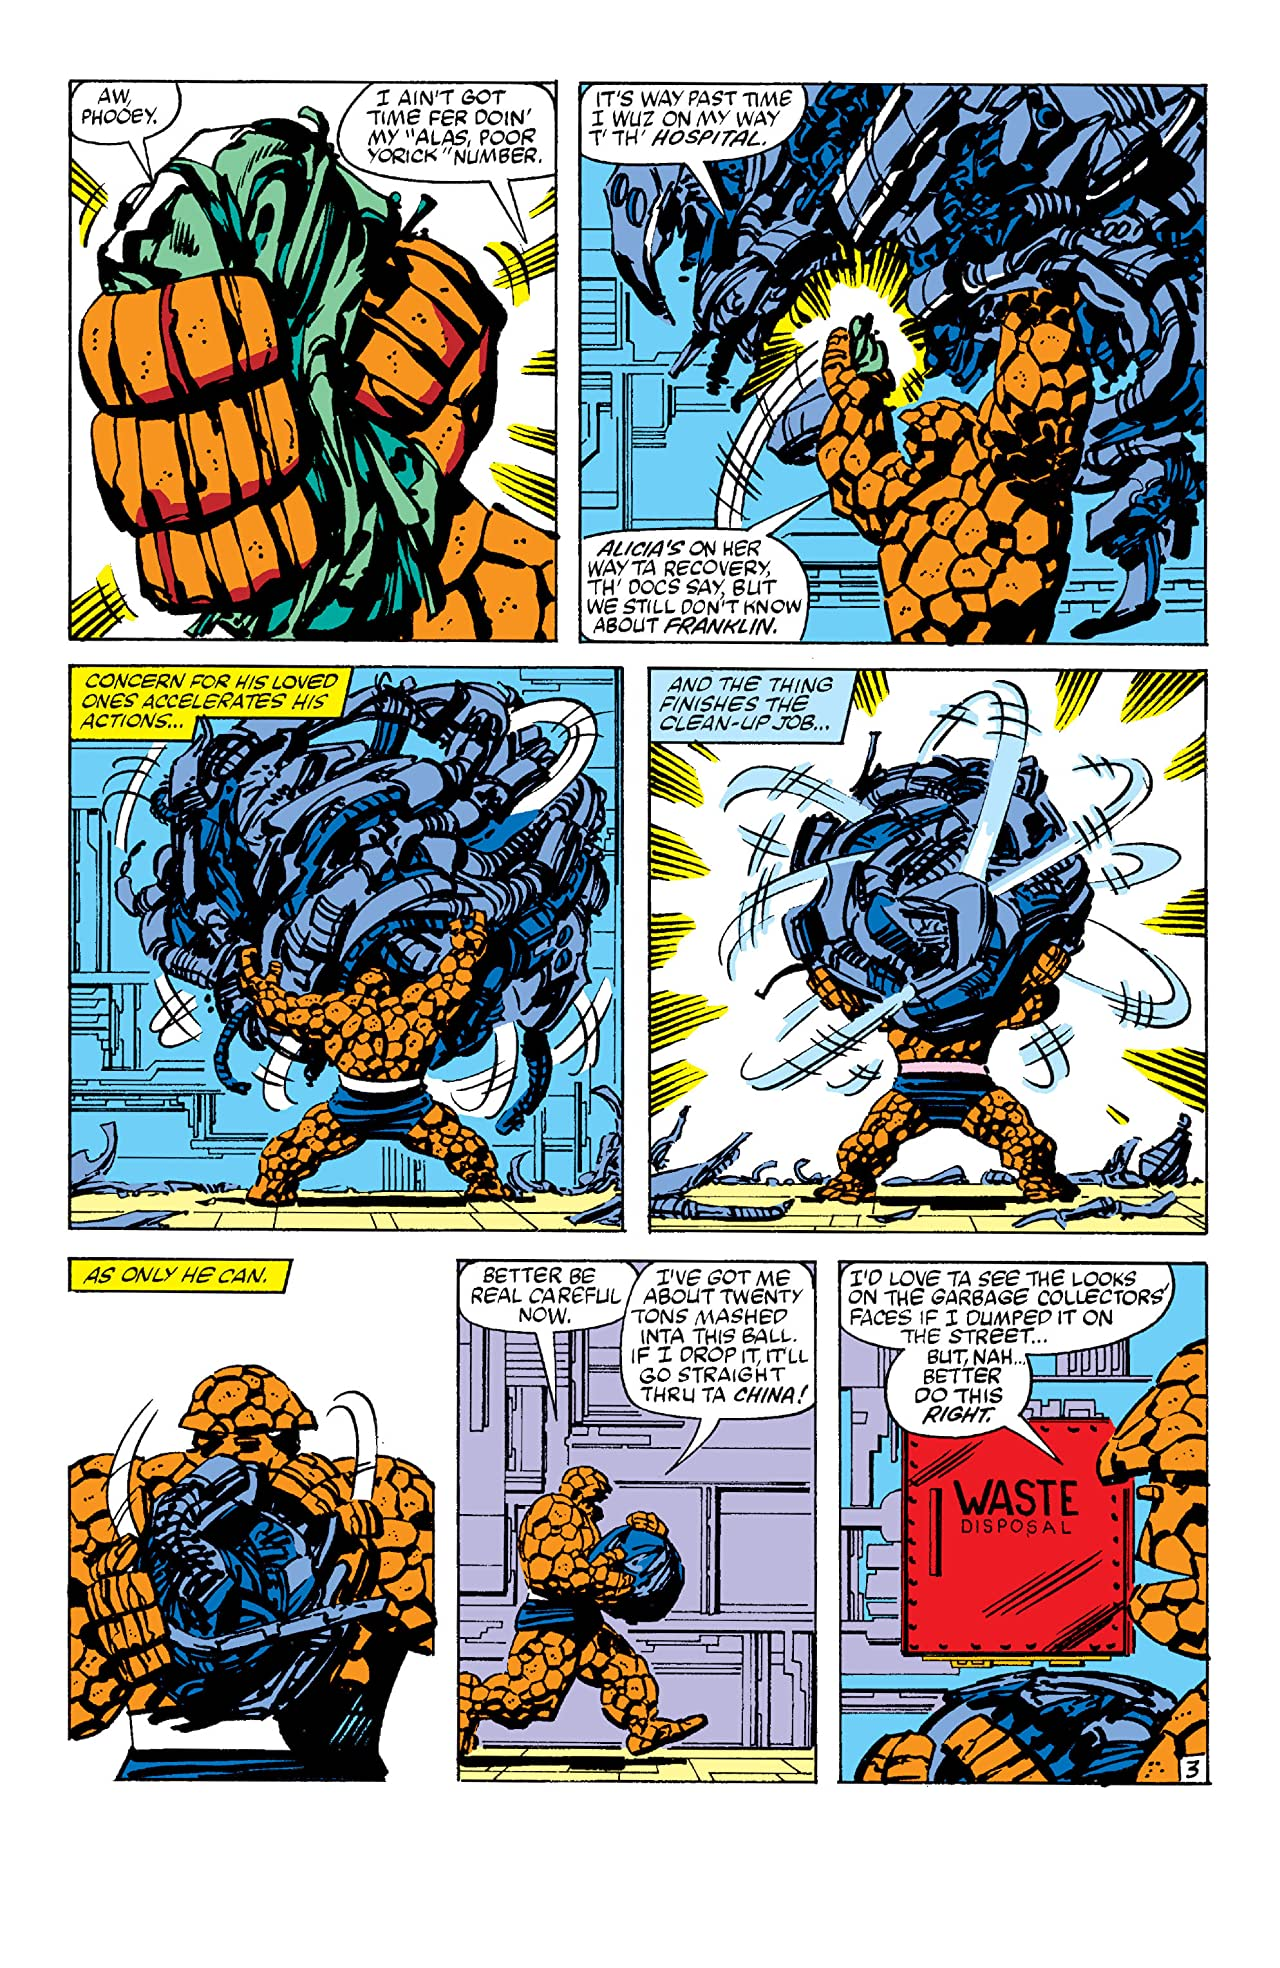 The Thing (1983-1986) #2